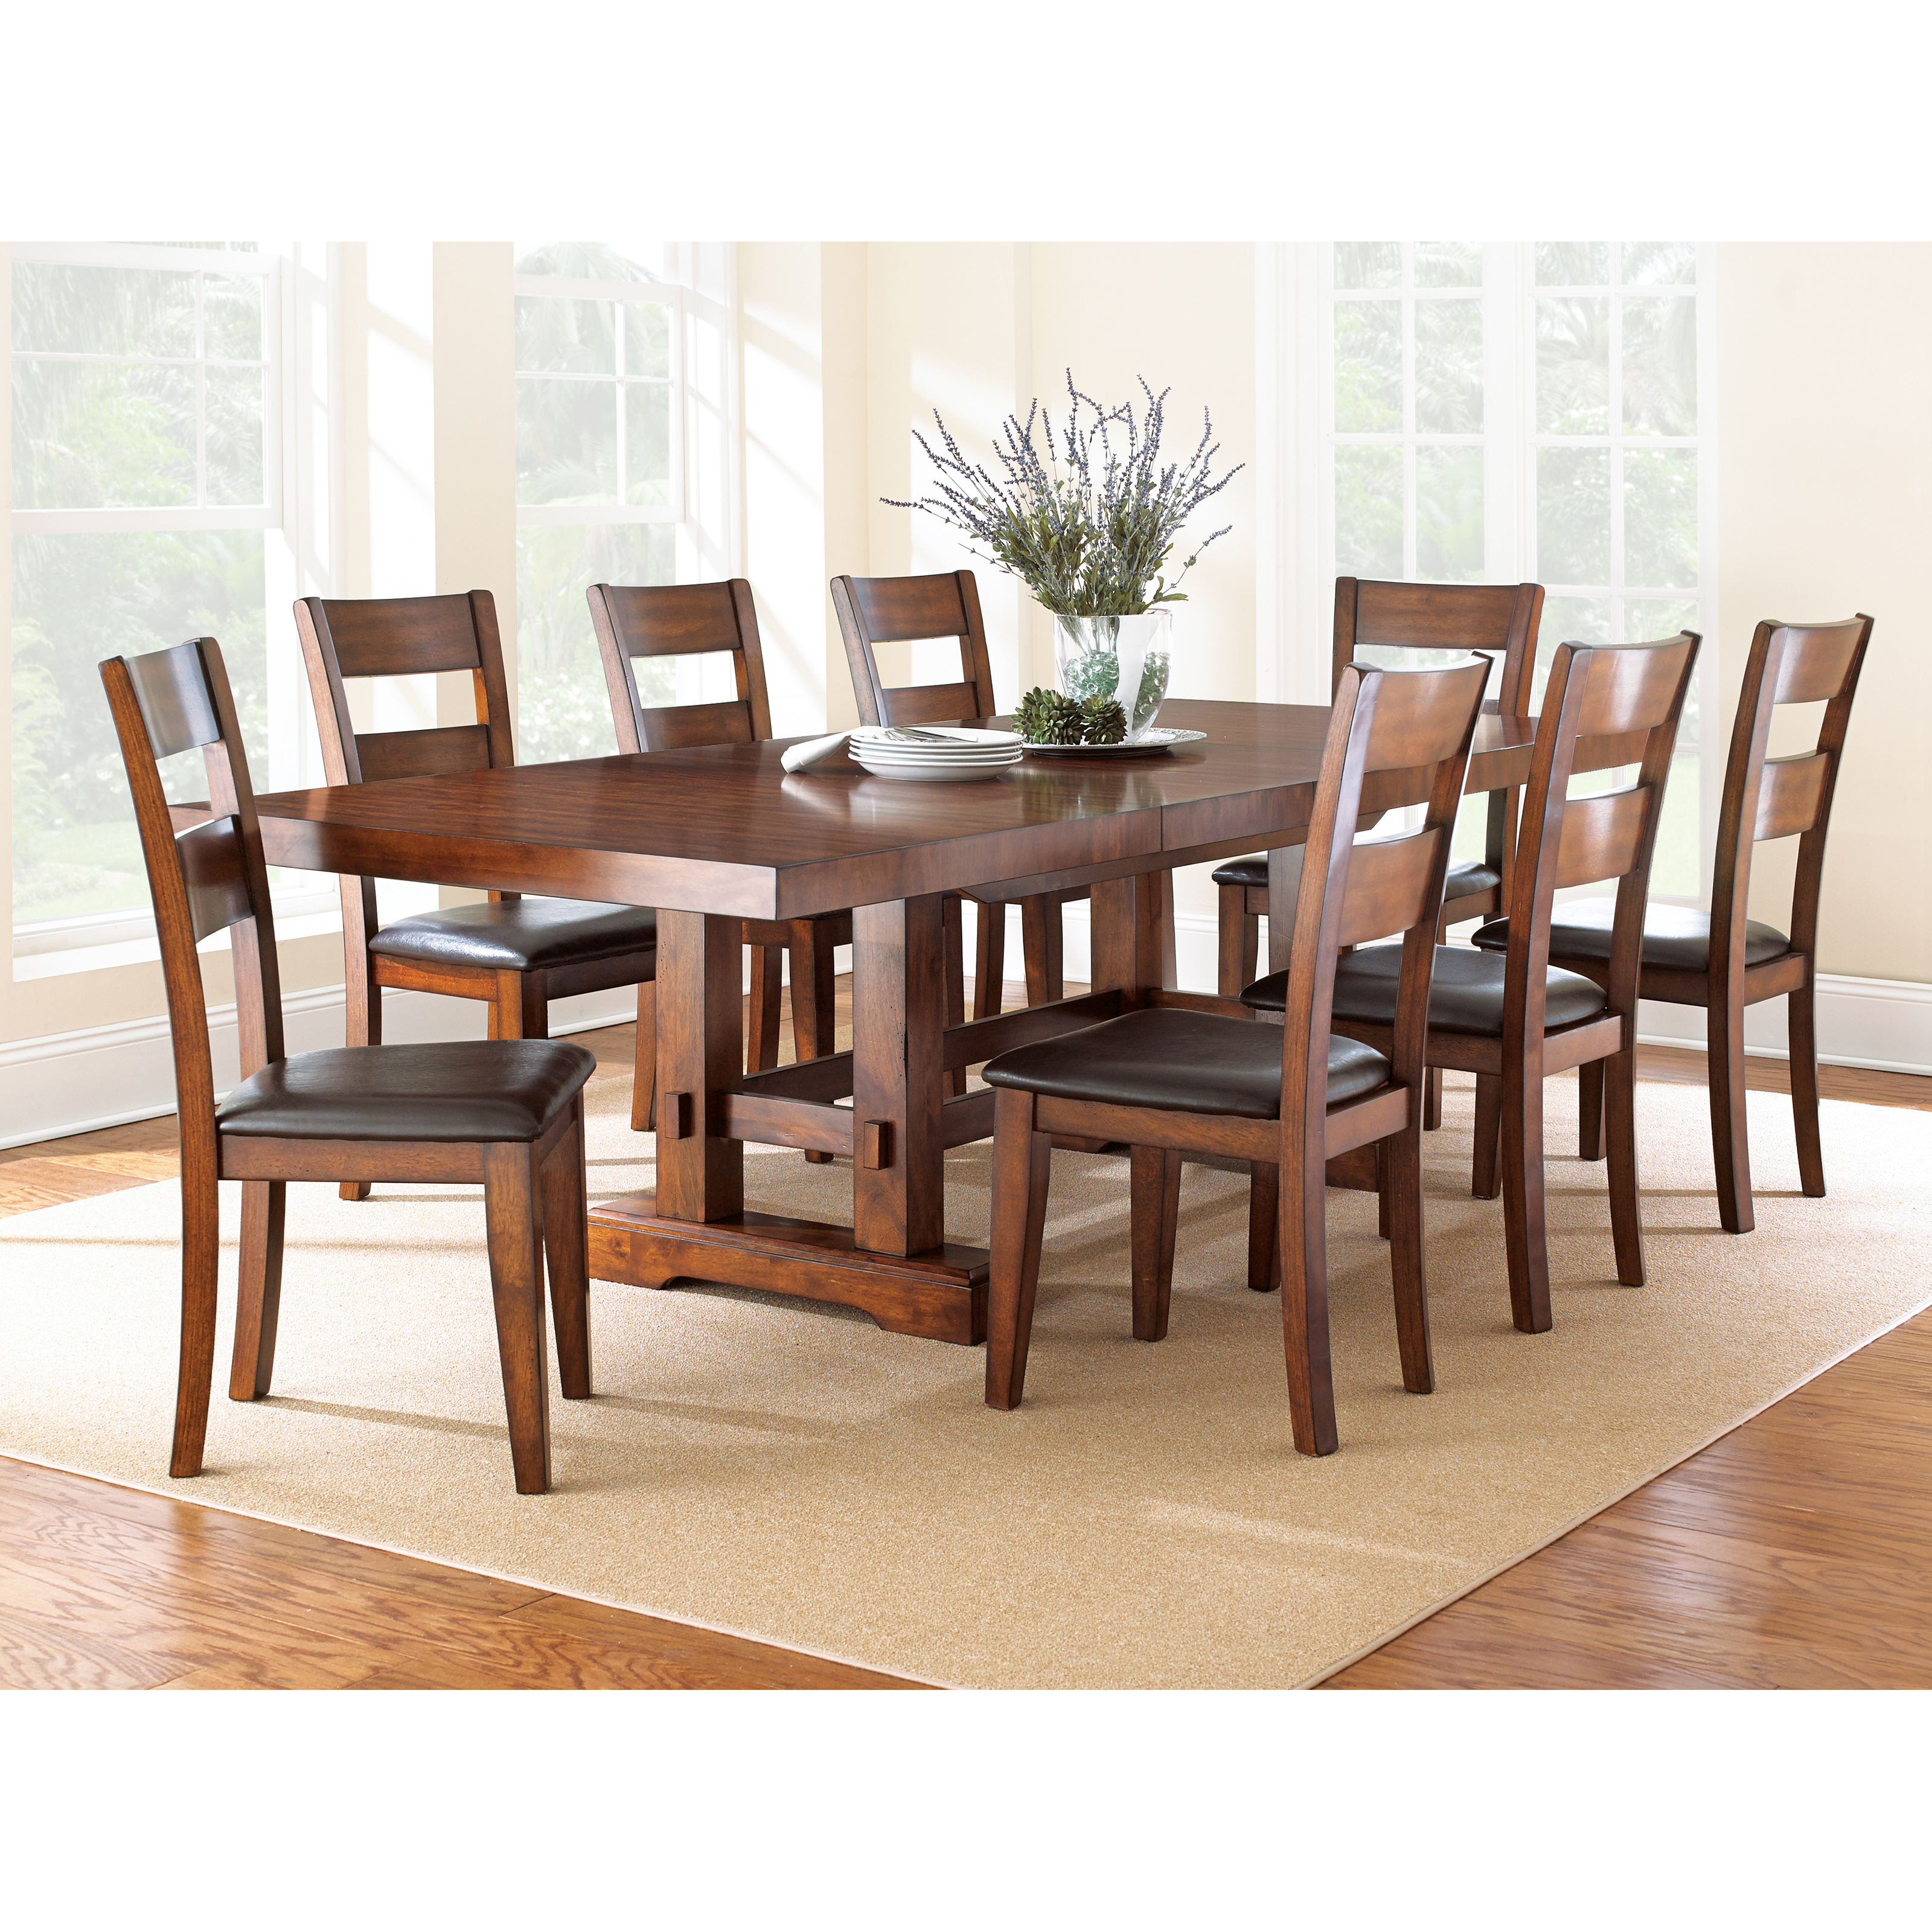 Beautiful Steve Silver Zappa 9 Piece Dining Table Set   Medium Cherry | Hayneedle